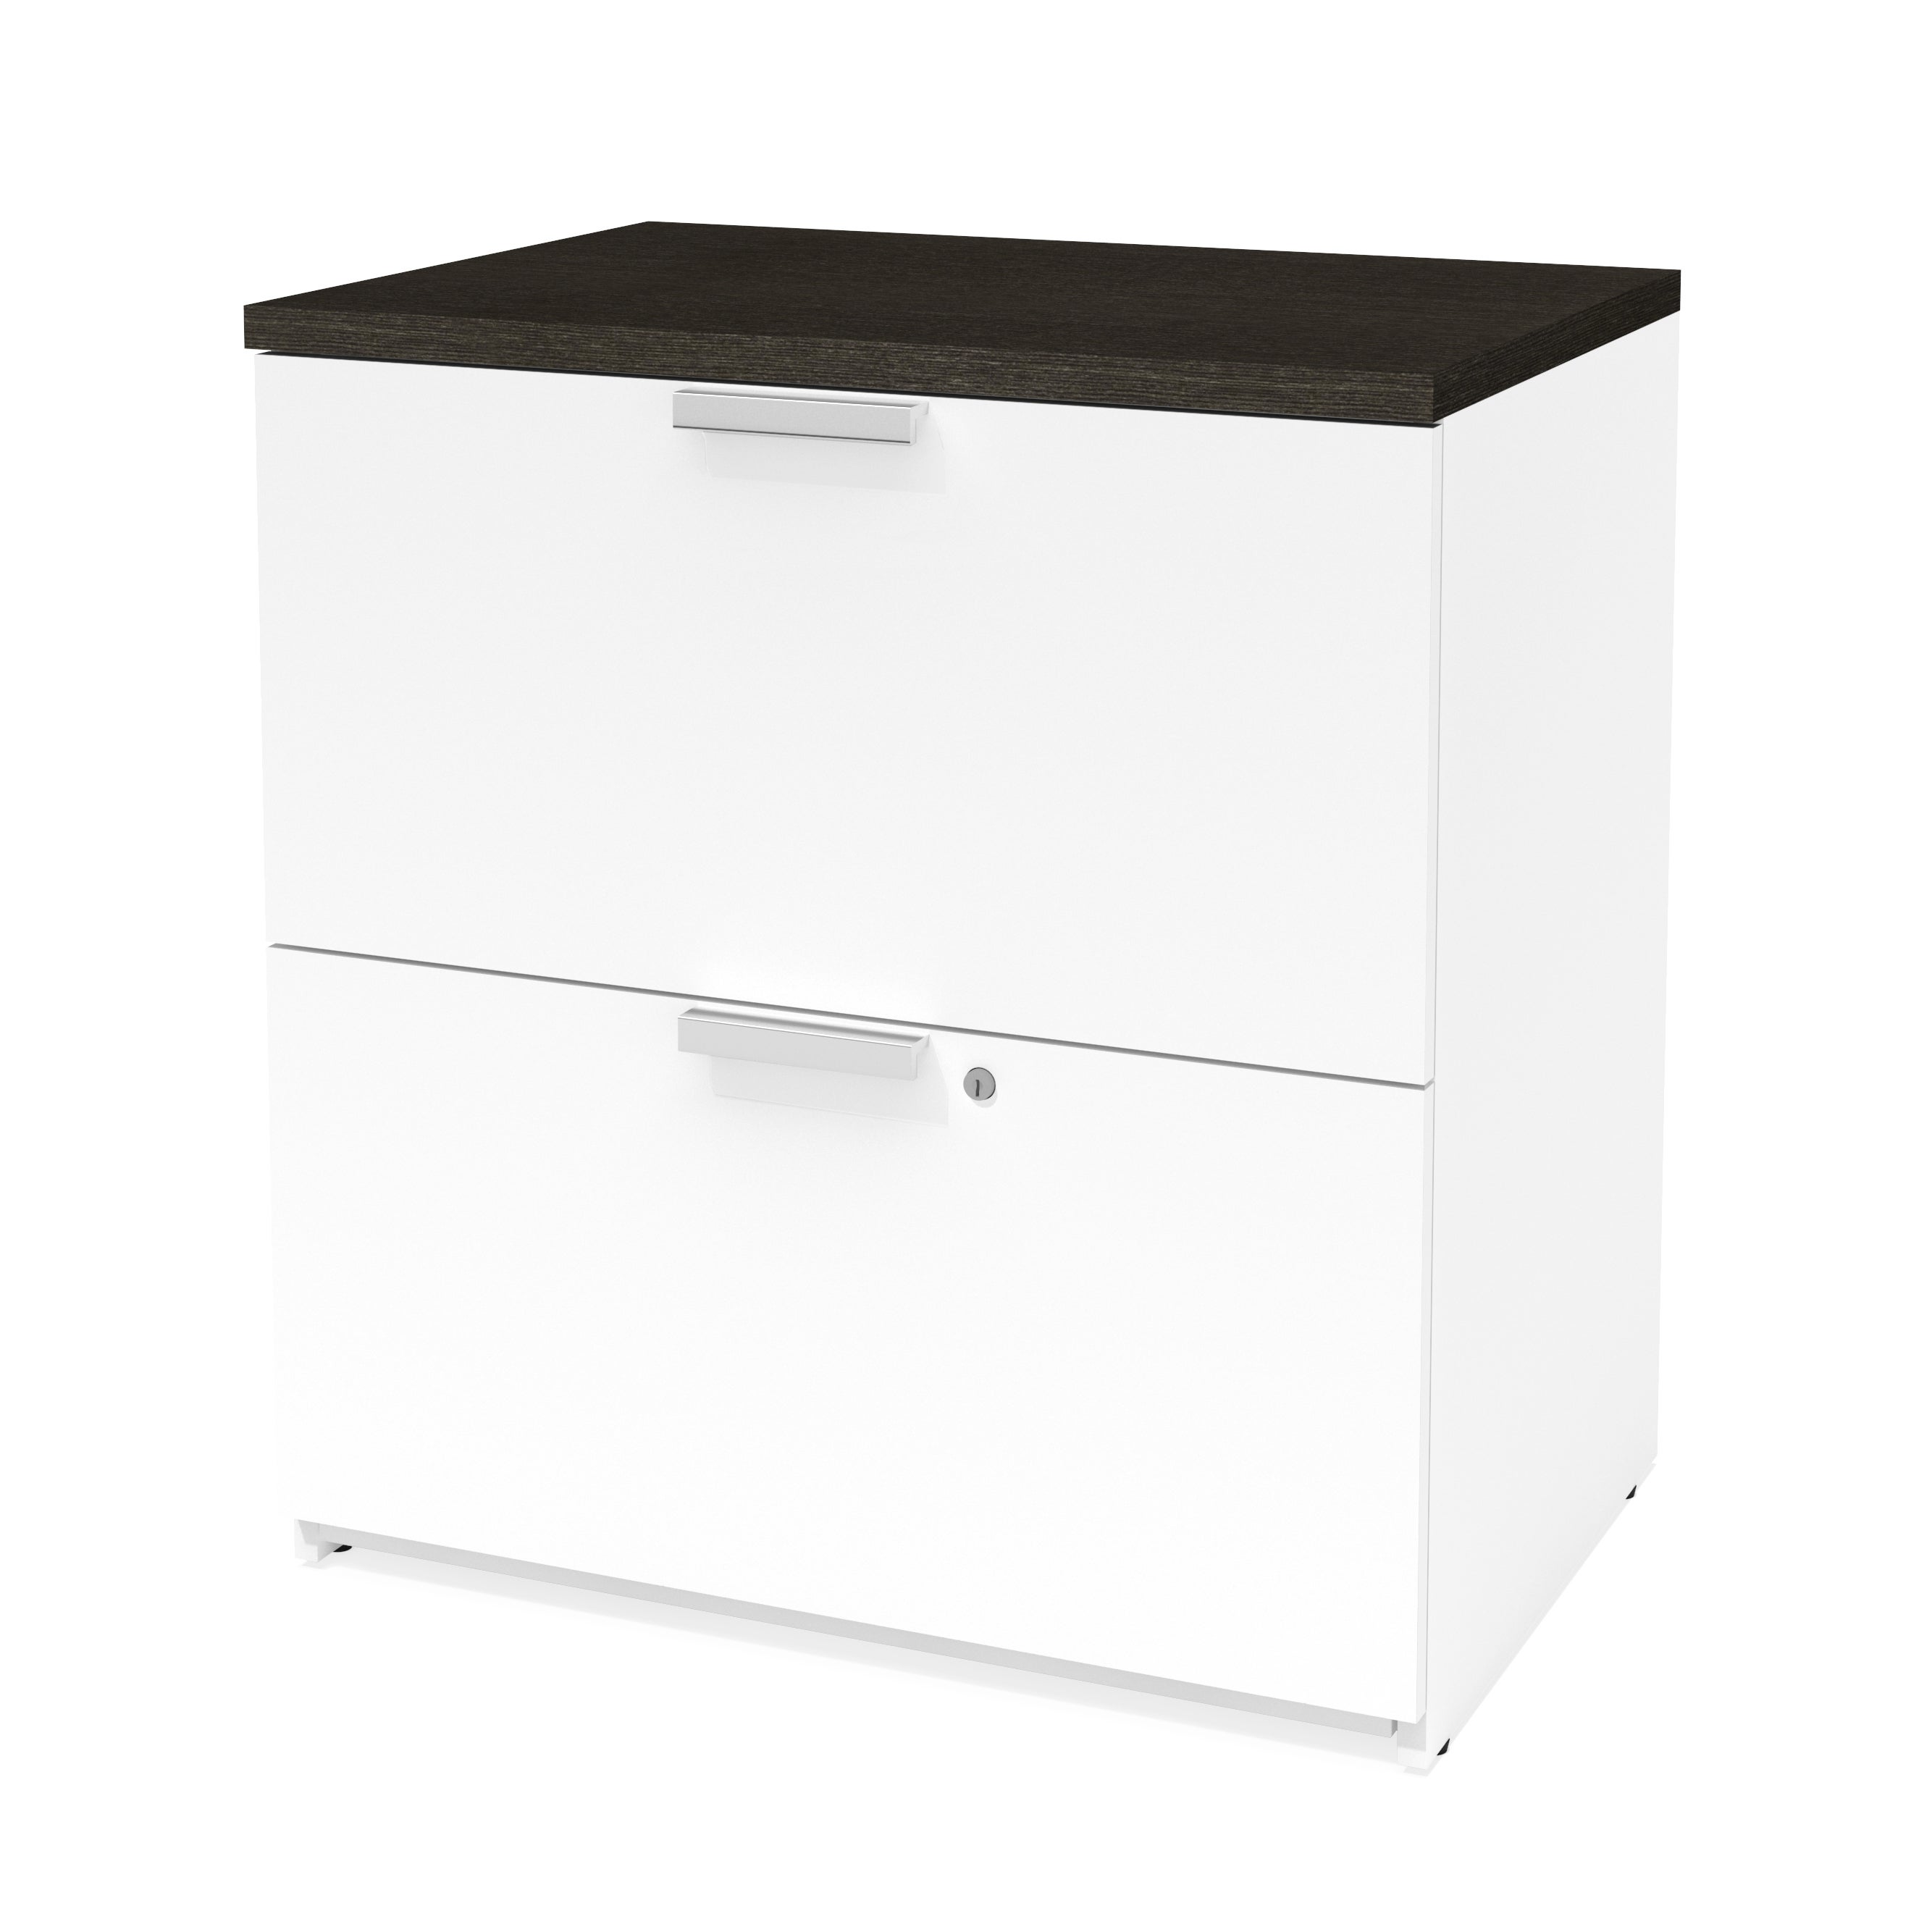 Bestar Pro Concept Plus 2 Drawer Lateral File